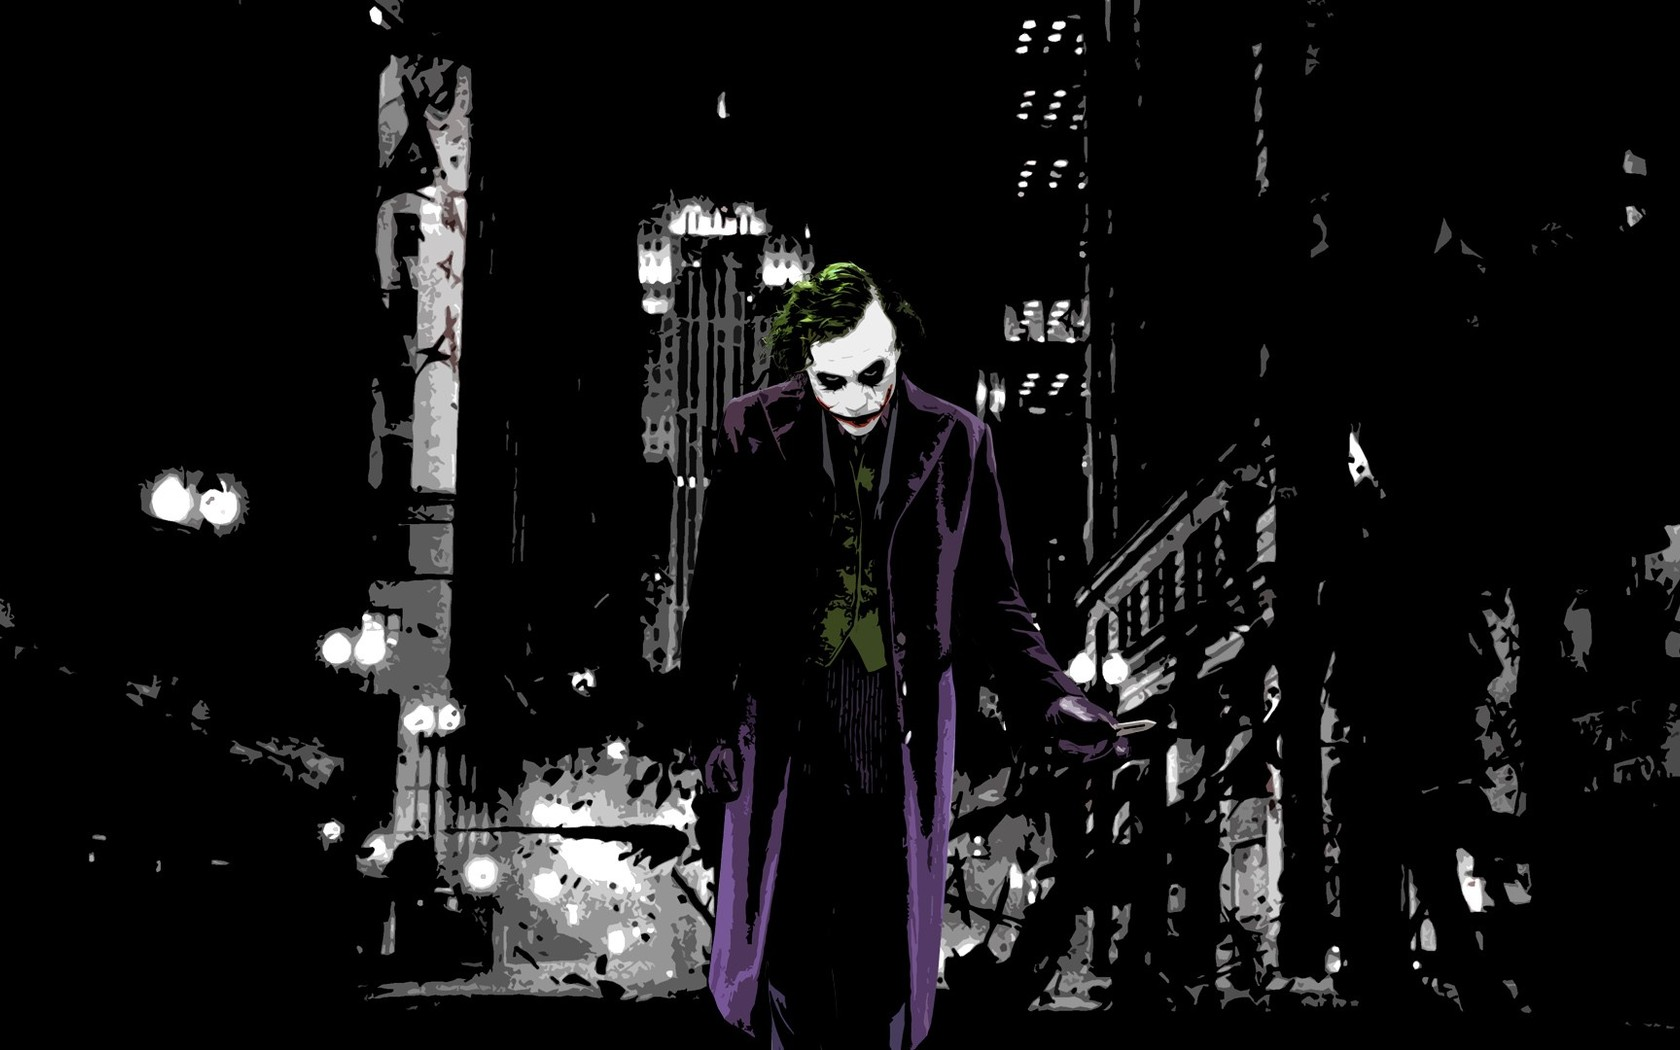 The Joker   The Dark Knight wallpaper 4989 1680x1050